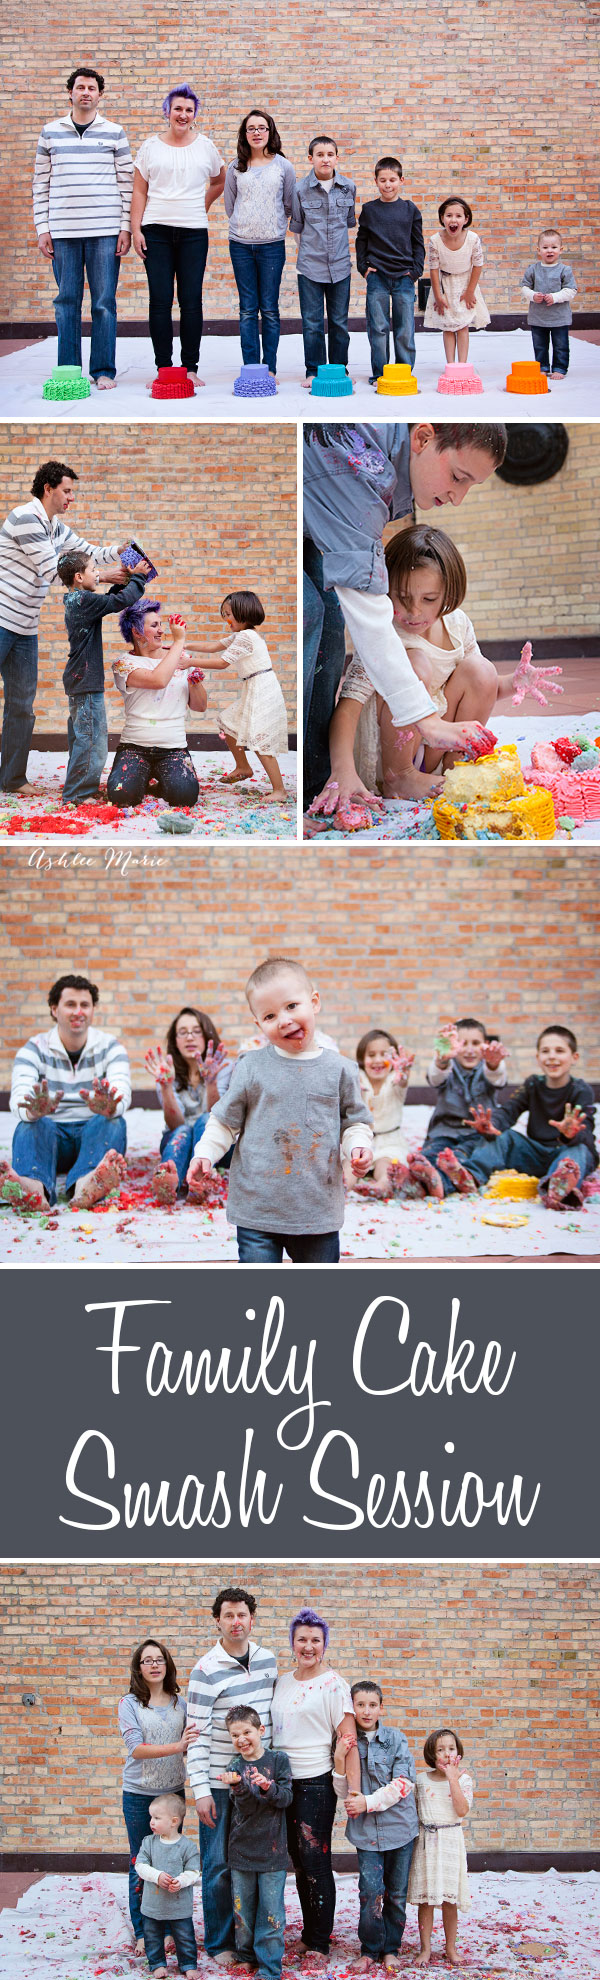 for a fun and unique family photosession we did a family smash cake session, each person got their own cake and we just went to town having and epic food fight with cake and frosting